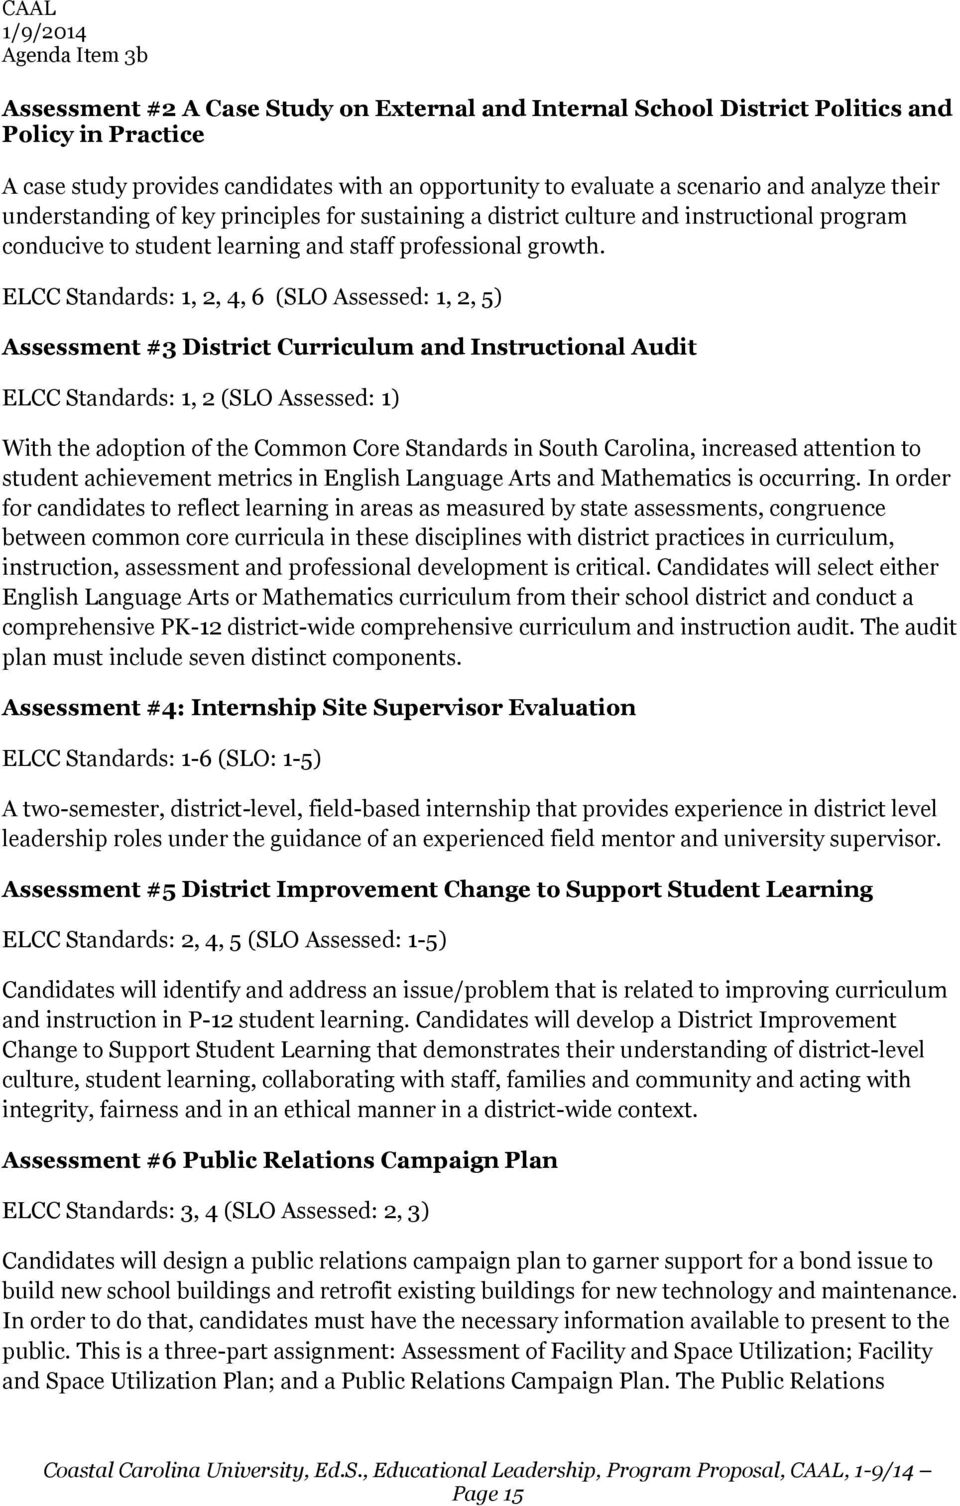 ELCC Standards: 1, 2, 4, 6 (SLO Assessed: 1, 2, 5) Assessment #3 District Curriculum and Instructional Audit ELCC Standards: 1, 2 (SLO Assessed: 1) With the adoption of the Common Core Standards in